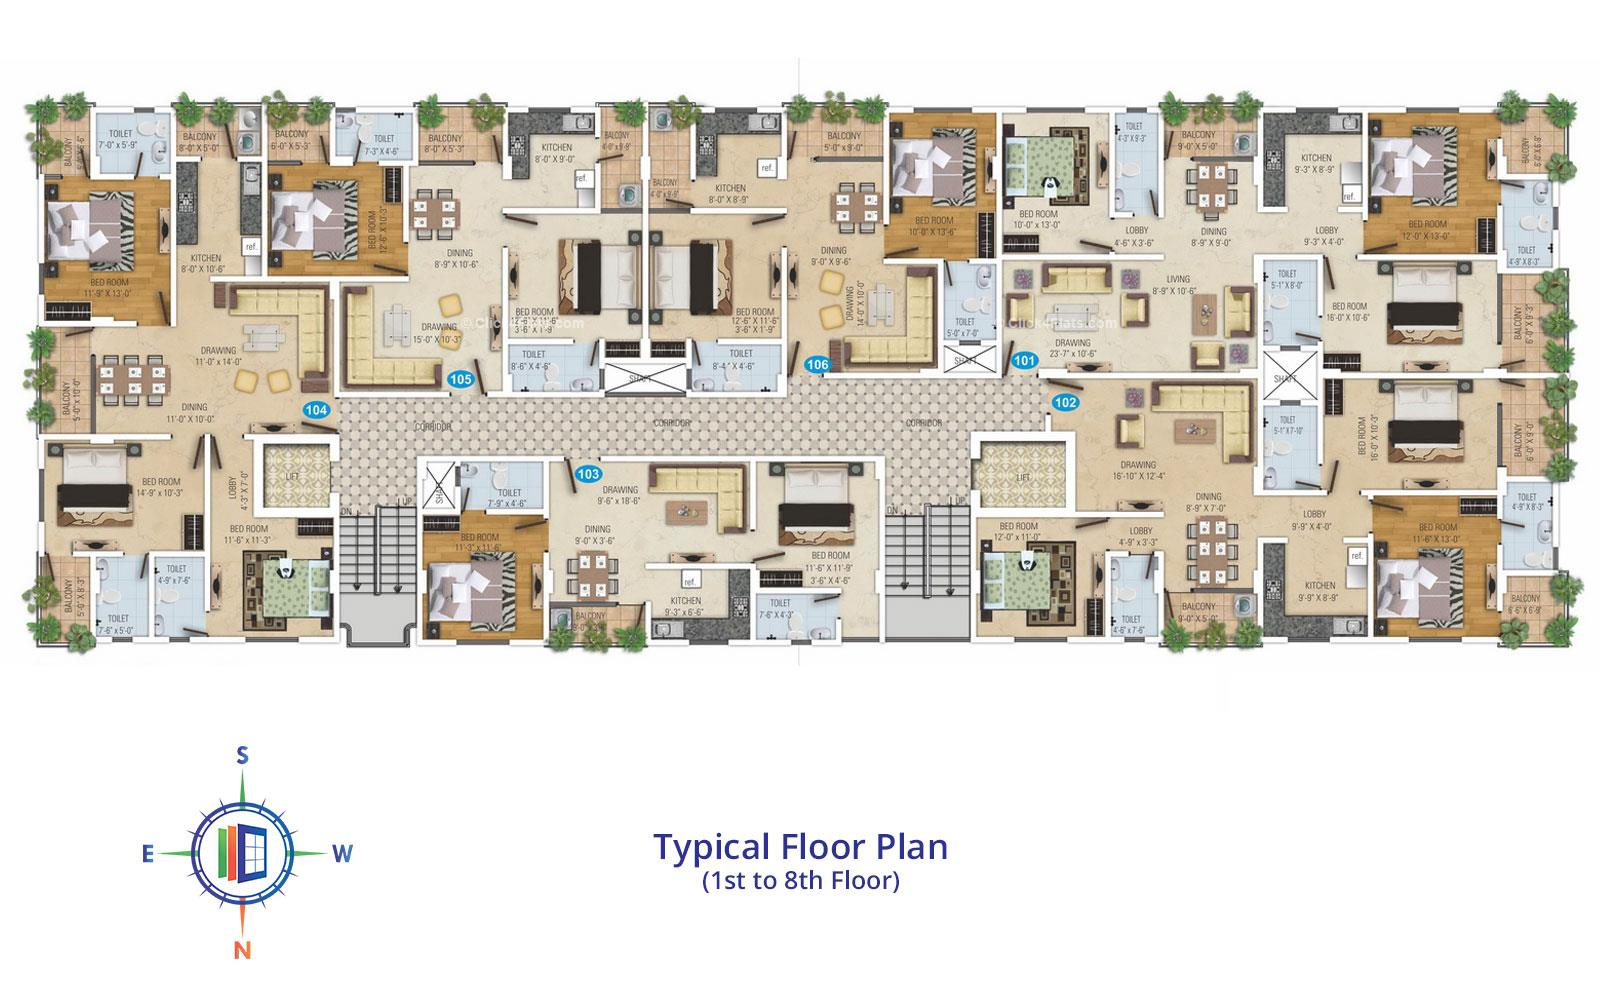 Royal Avenue Typical Floor Plan